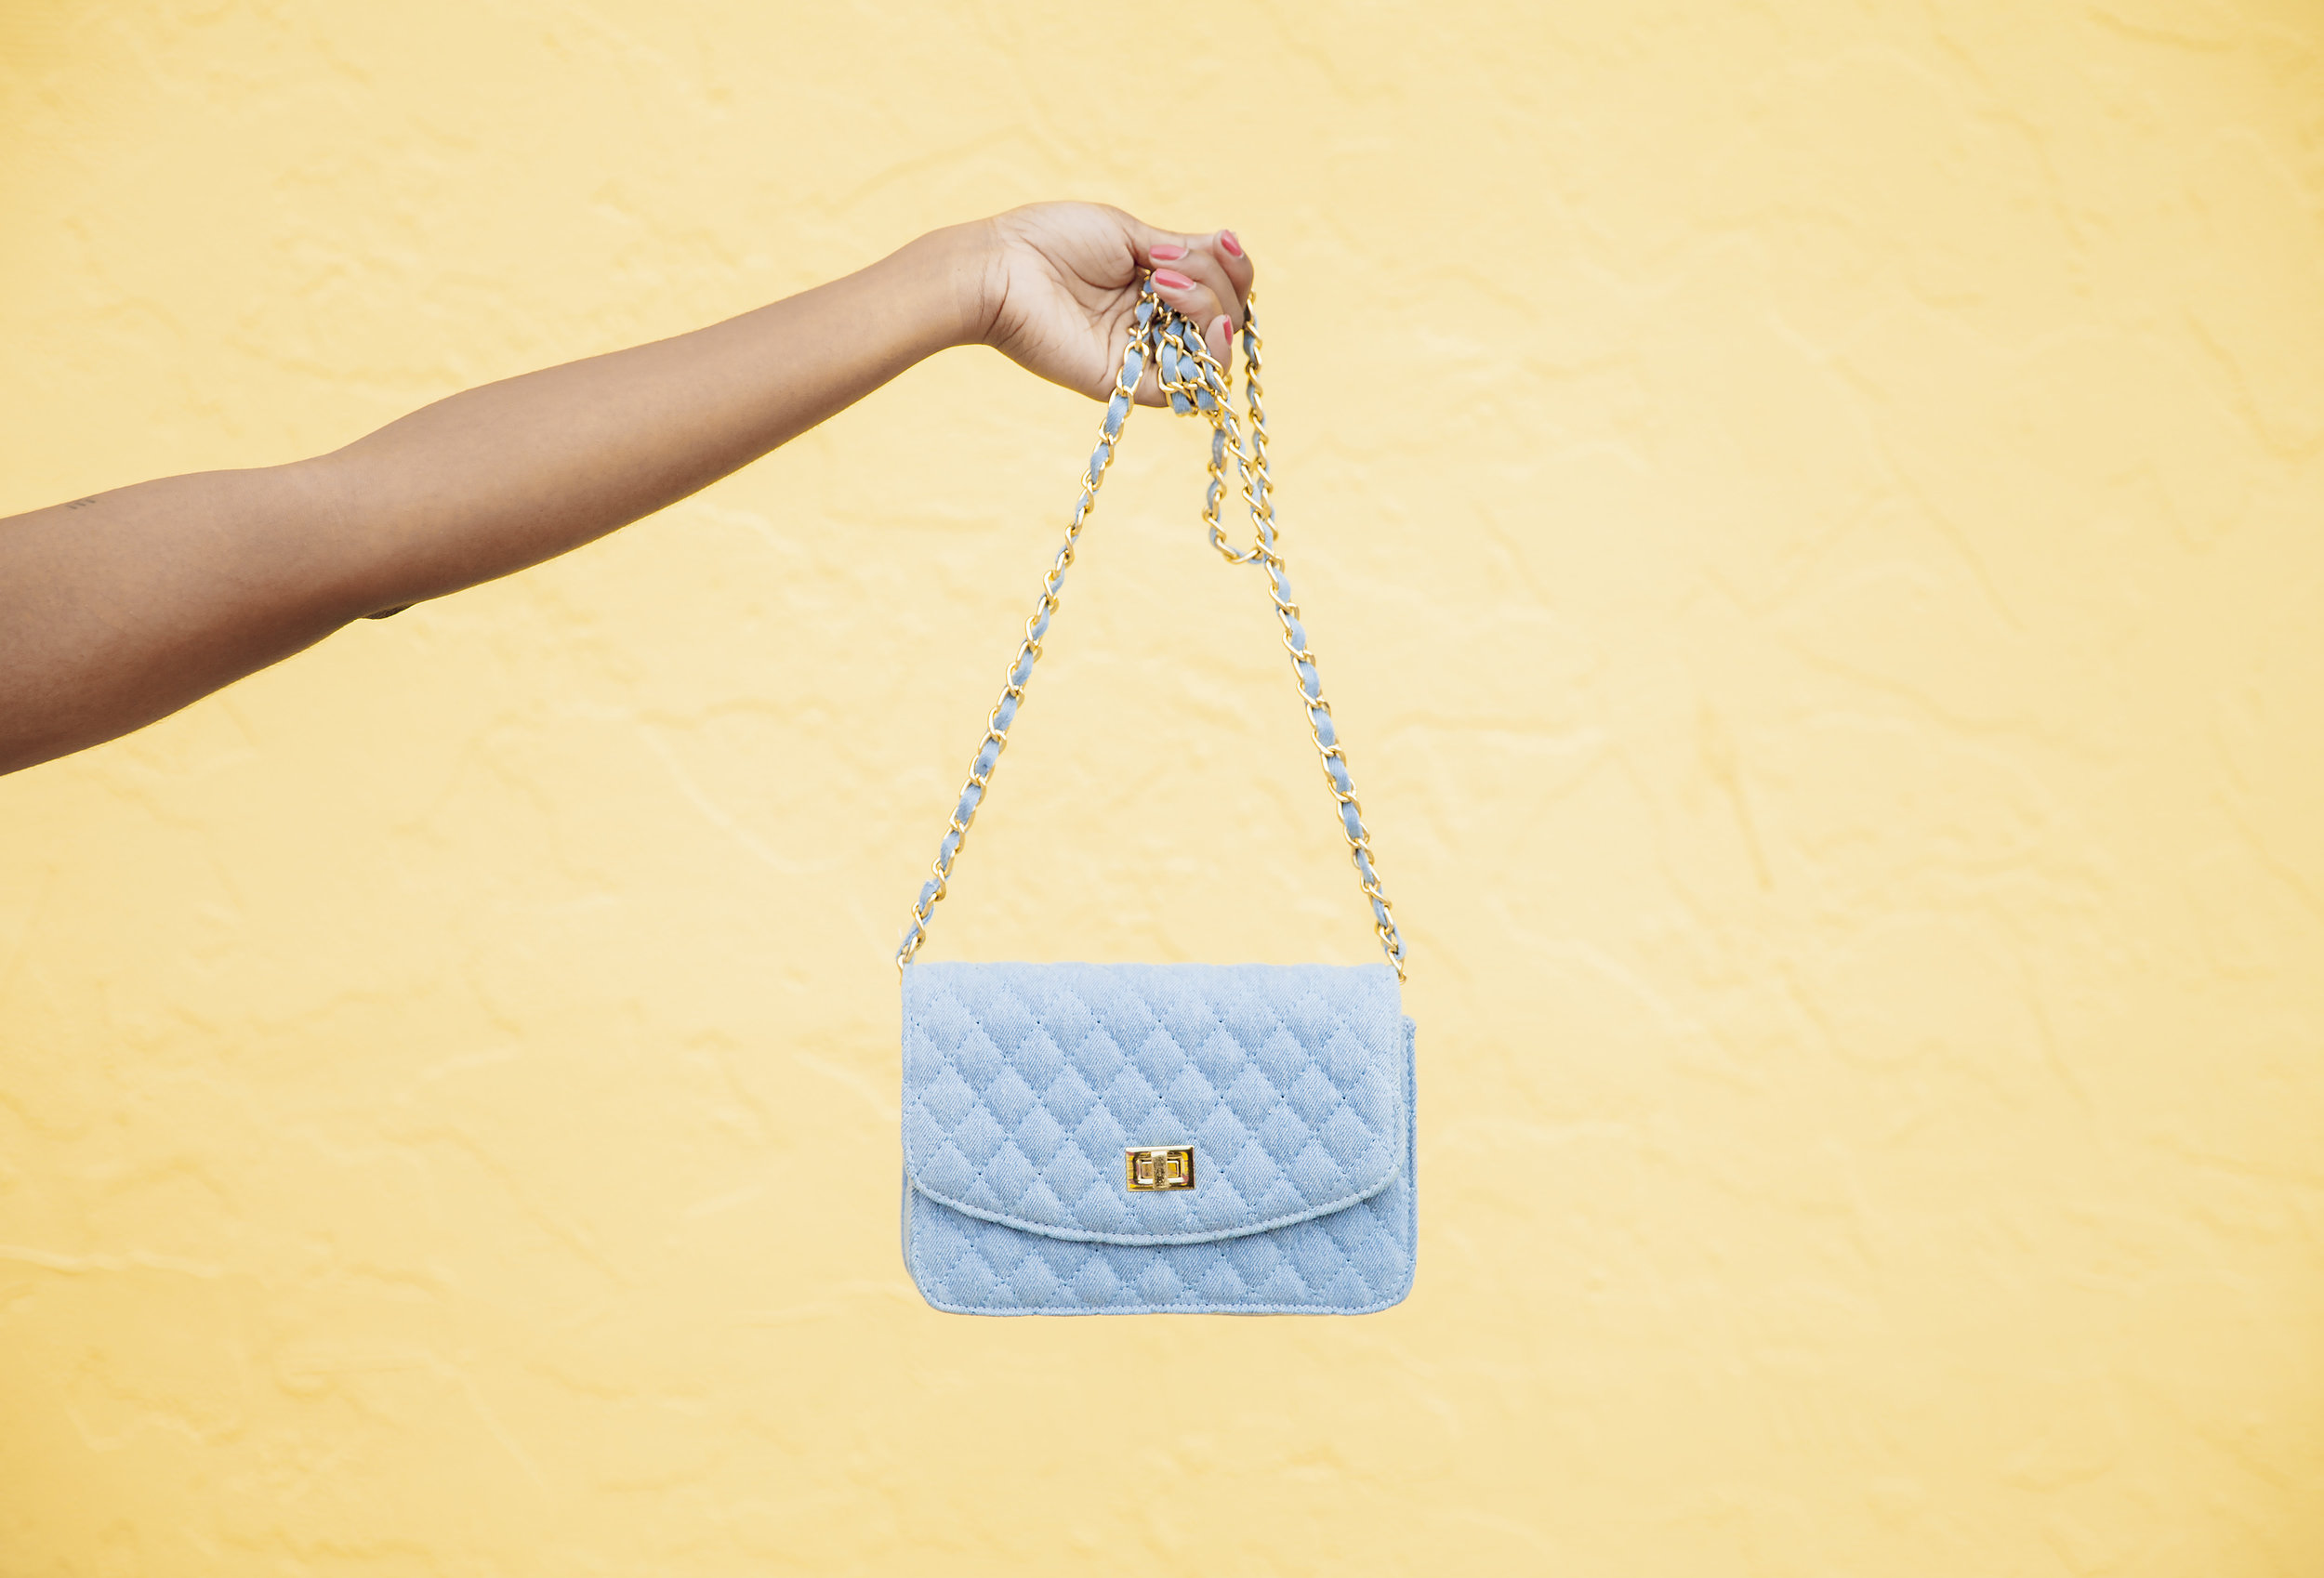 Although this bag is currently sold out, you can pick any purse from Shop J and G and use my code PAIGE15 for 15% off!